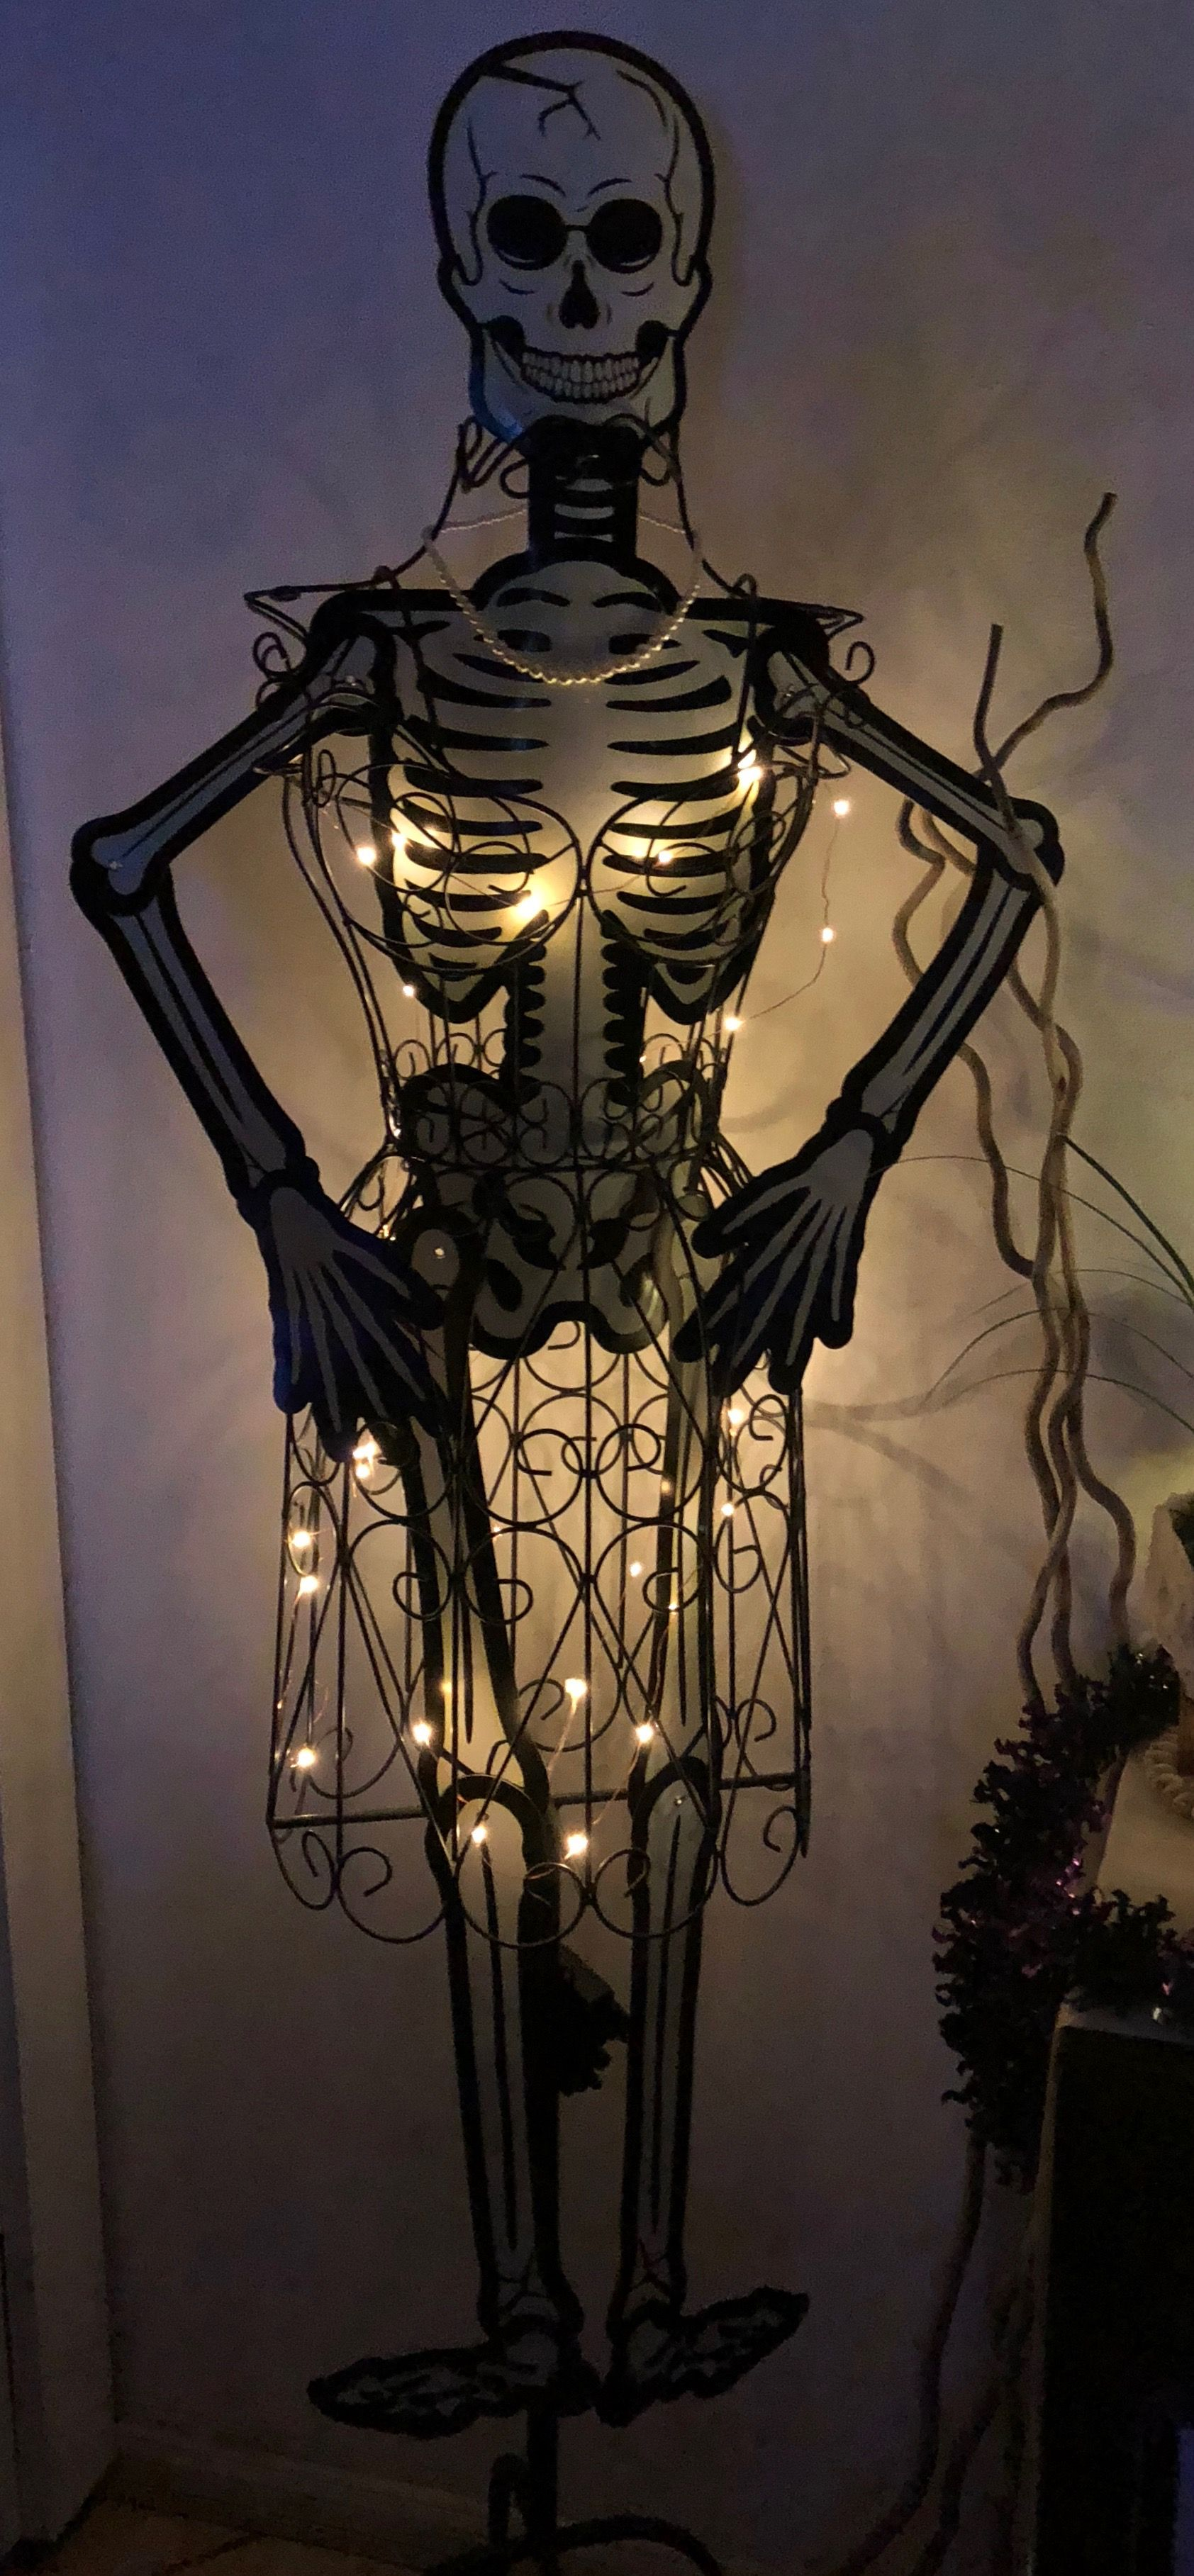 A Simple Addition Slipped Inside For Halloween Decor